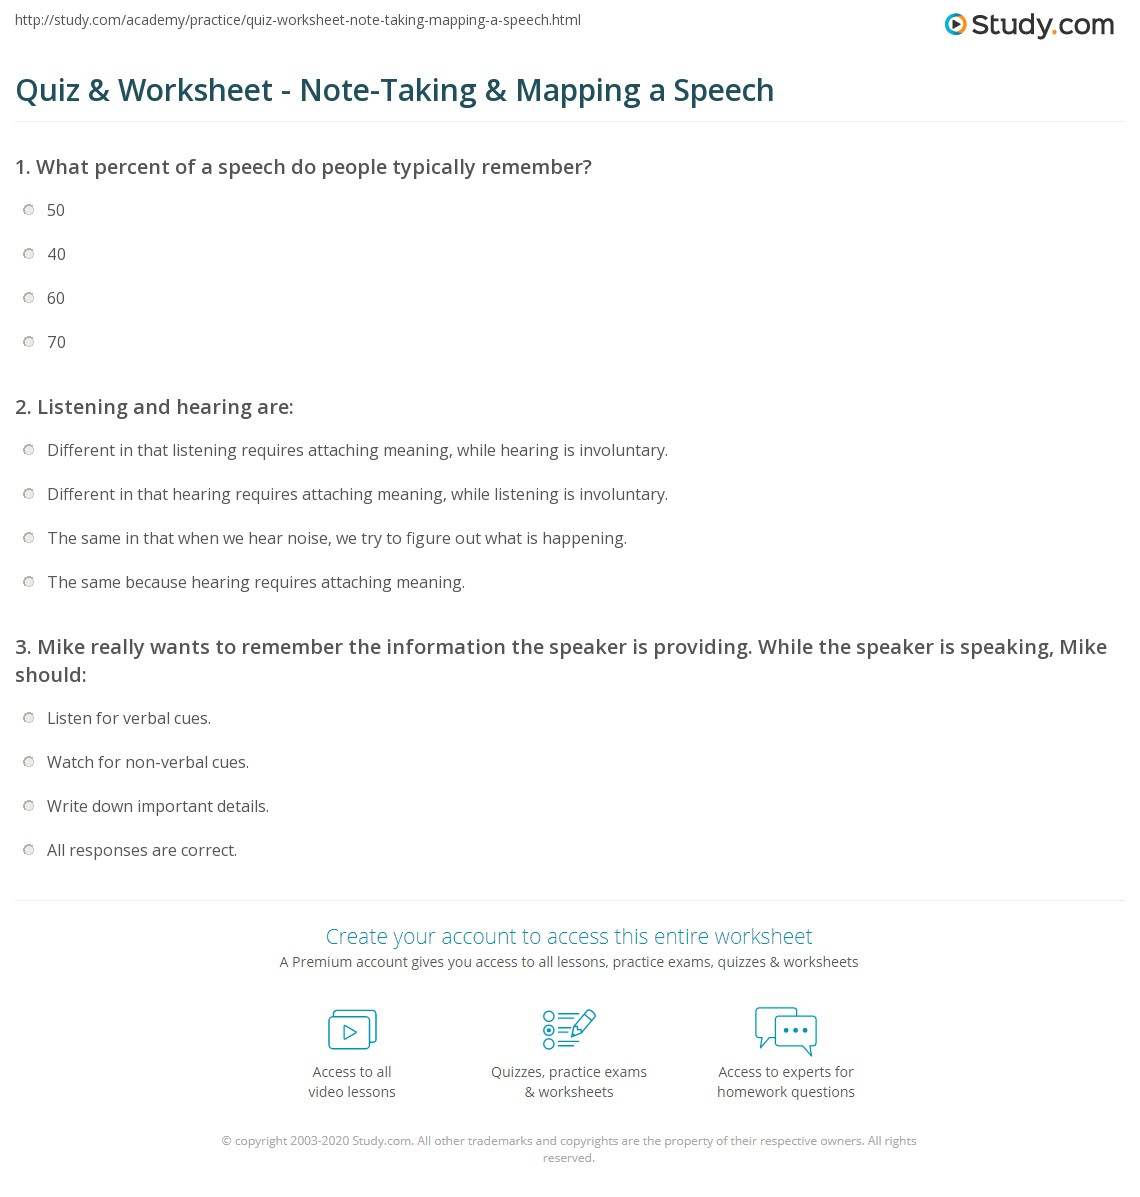 quiz worksheet note taking mapping a speech study com